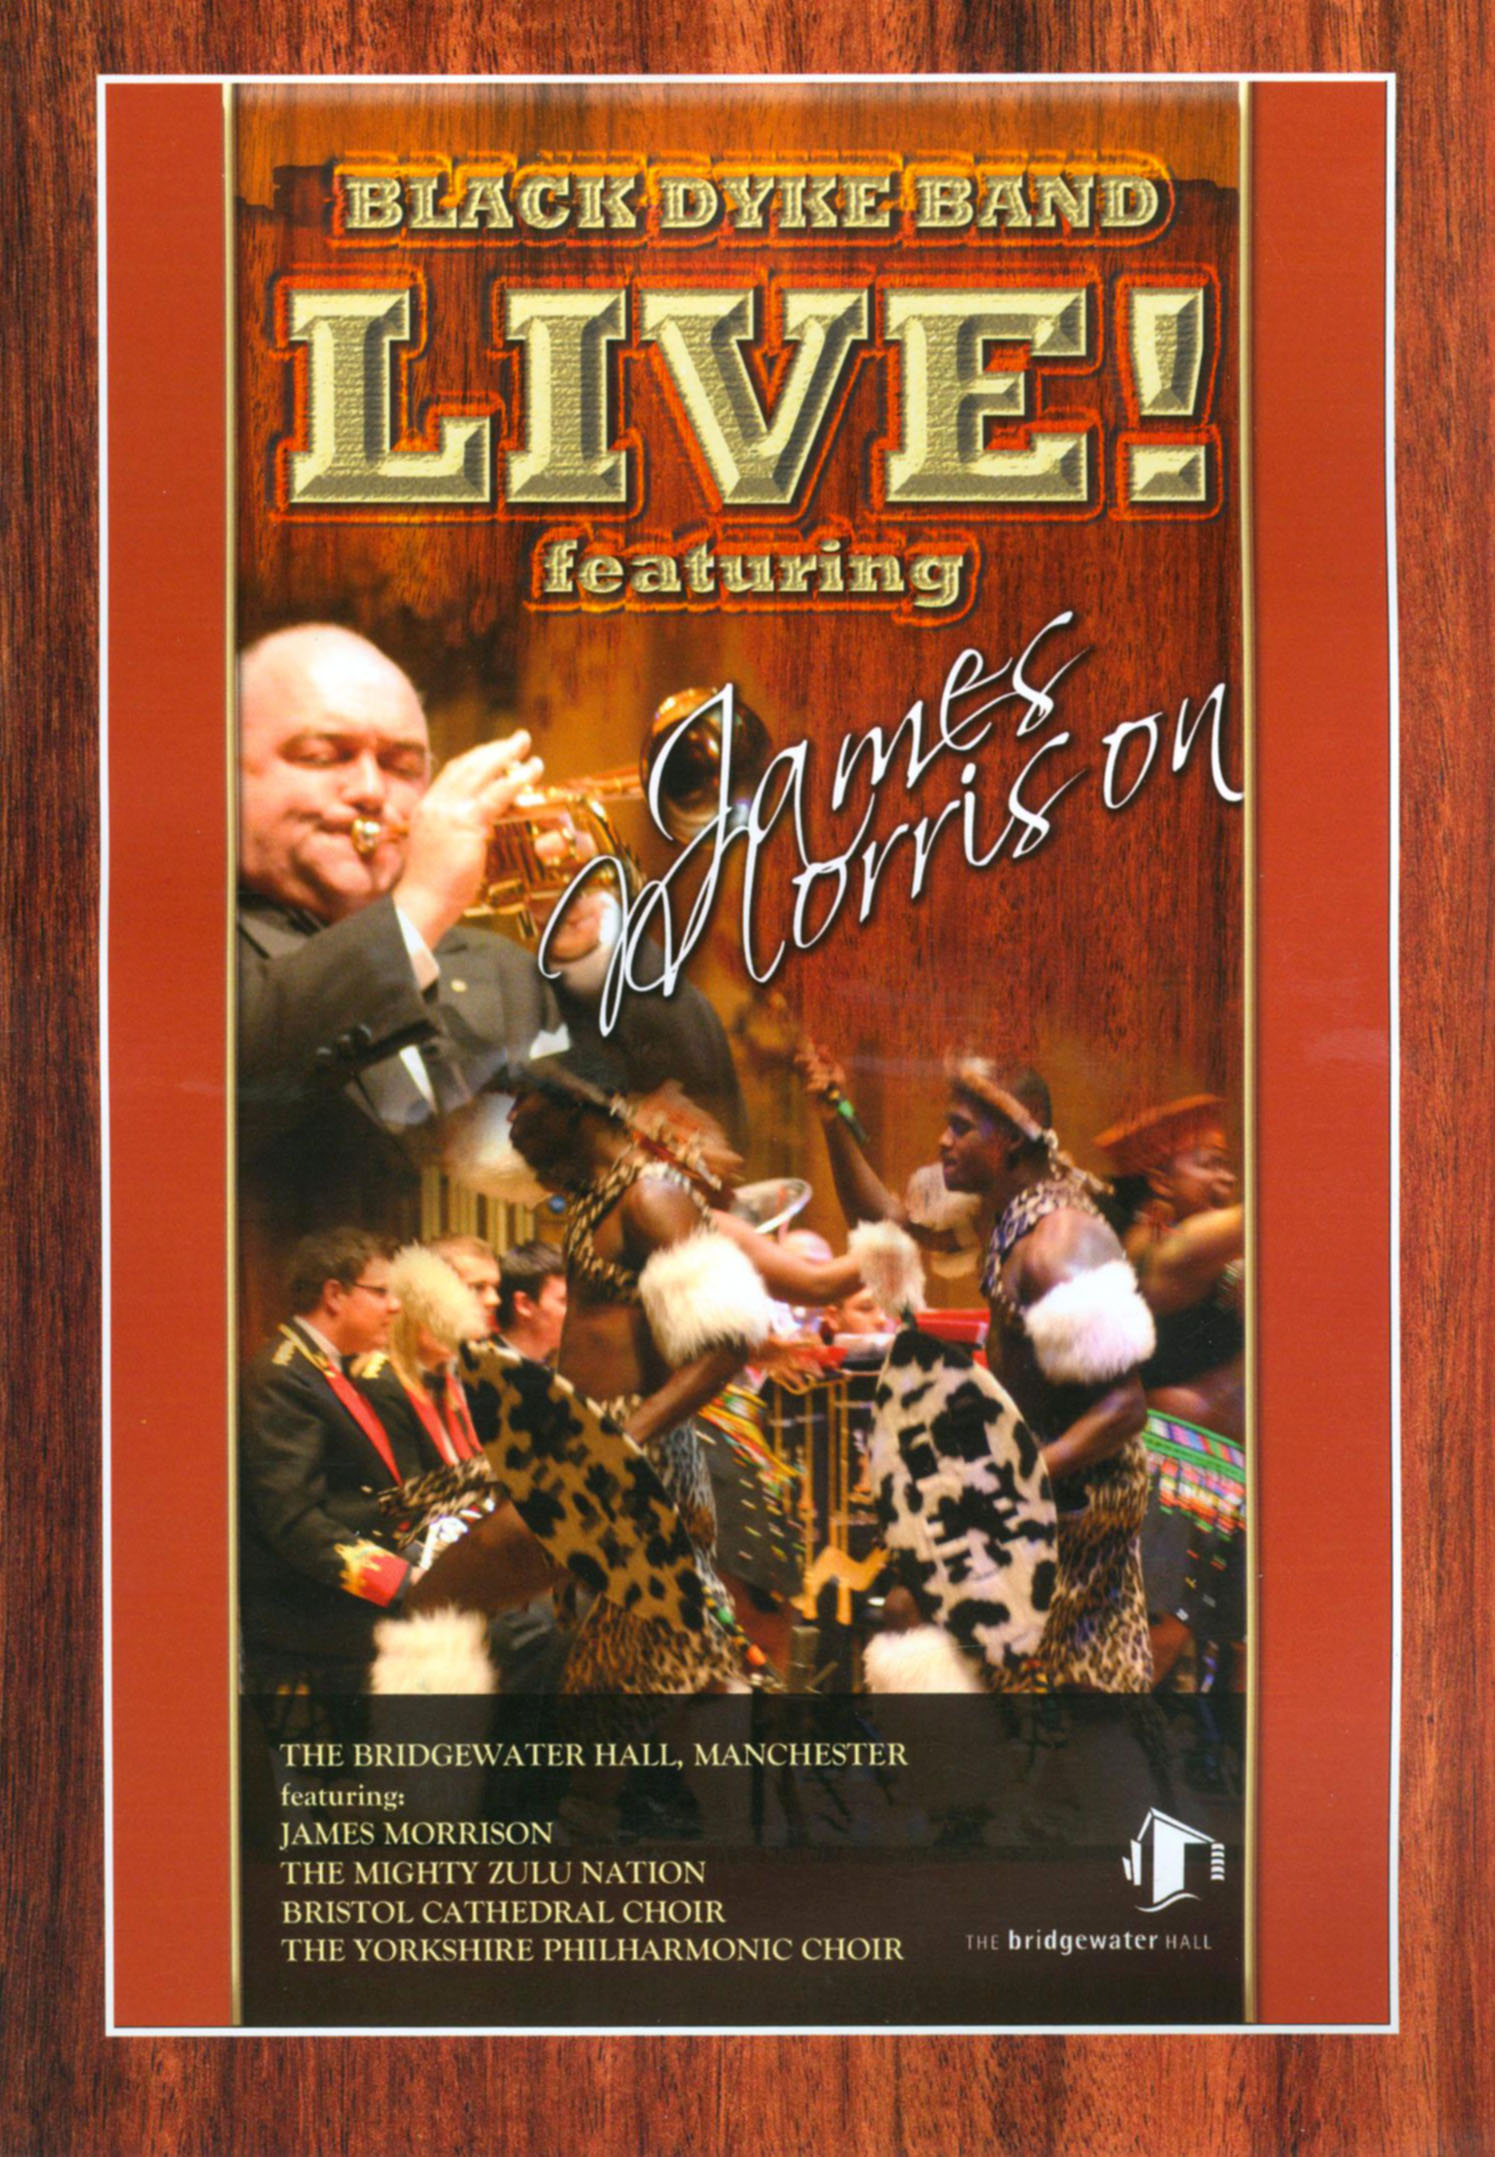 Black Dyke Band: Live! - Featuring James Morrison